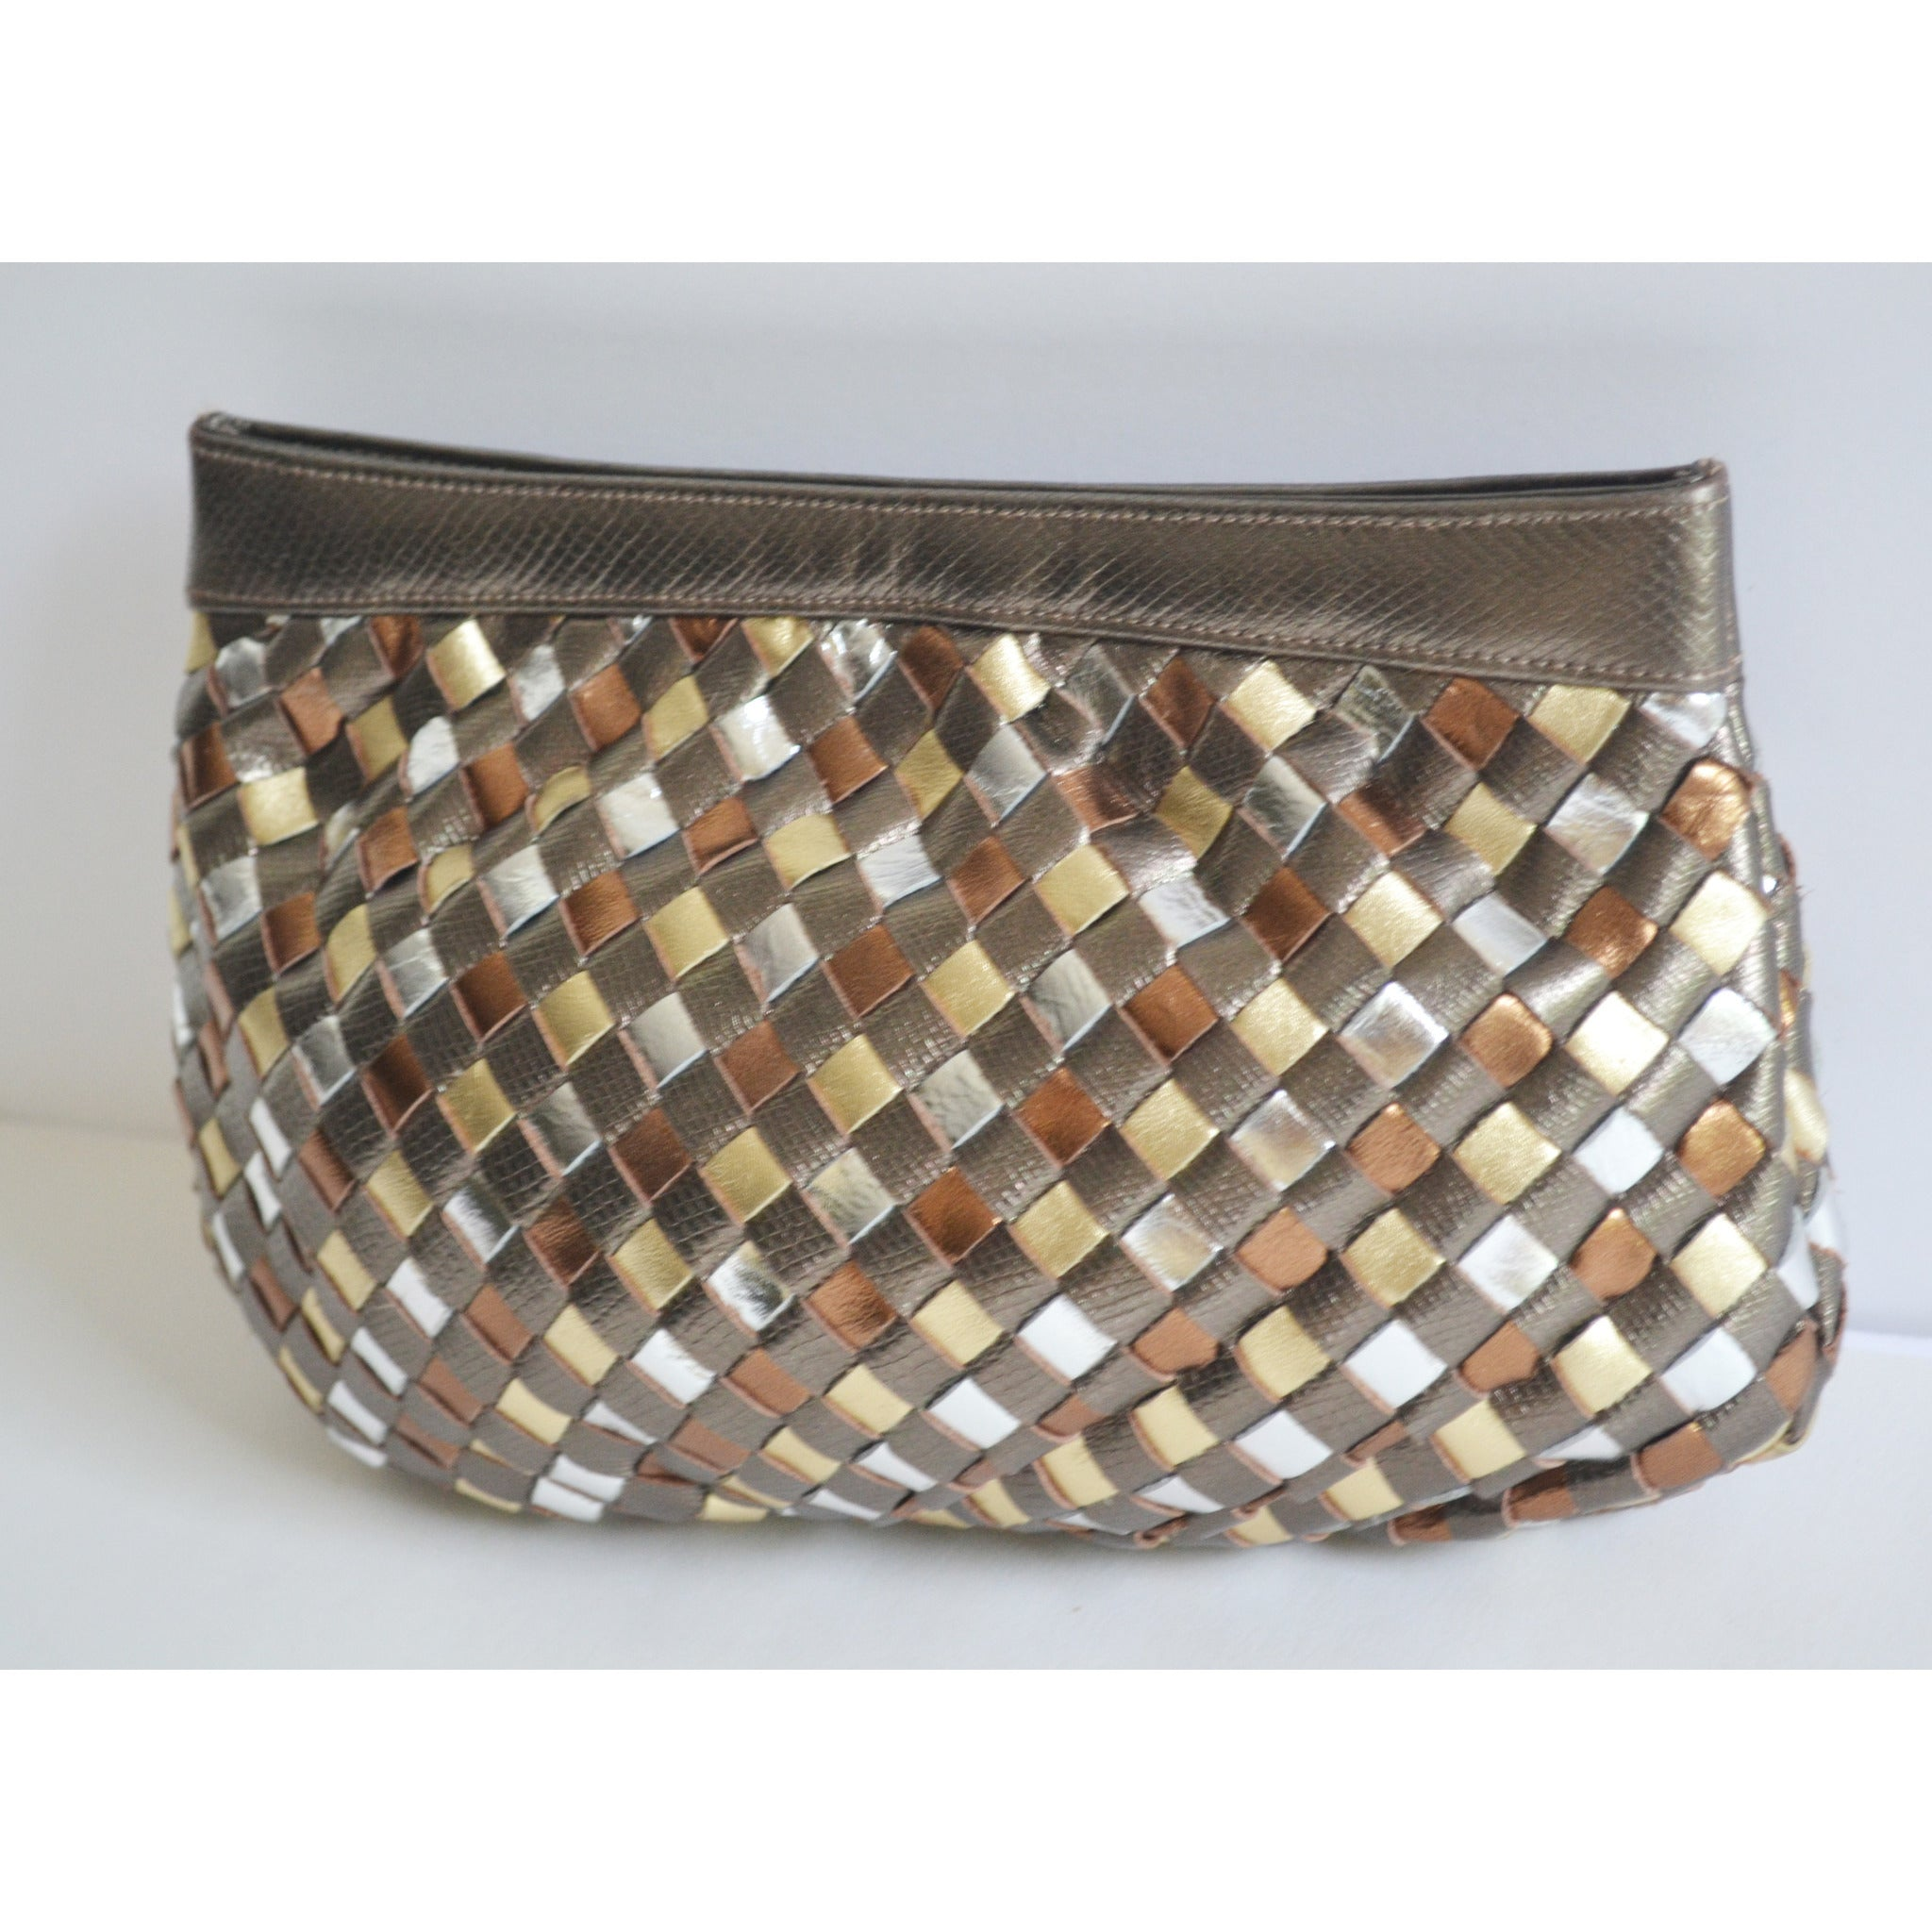 Vintage Metallic Woven Leather Clutch Purse By Sharif